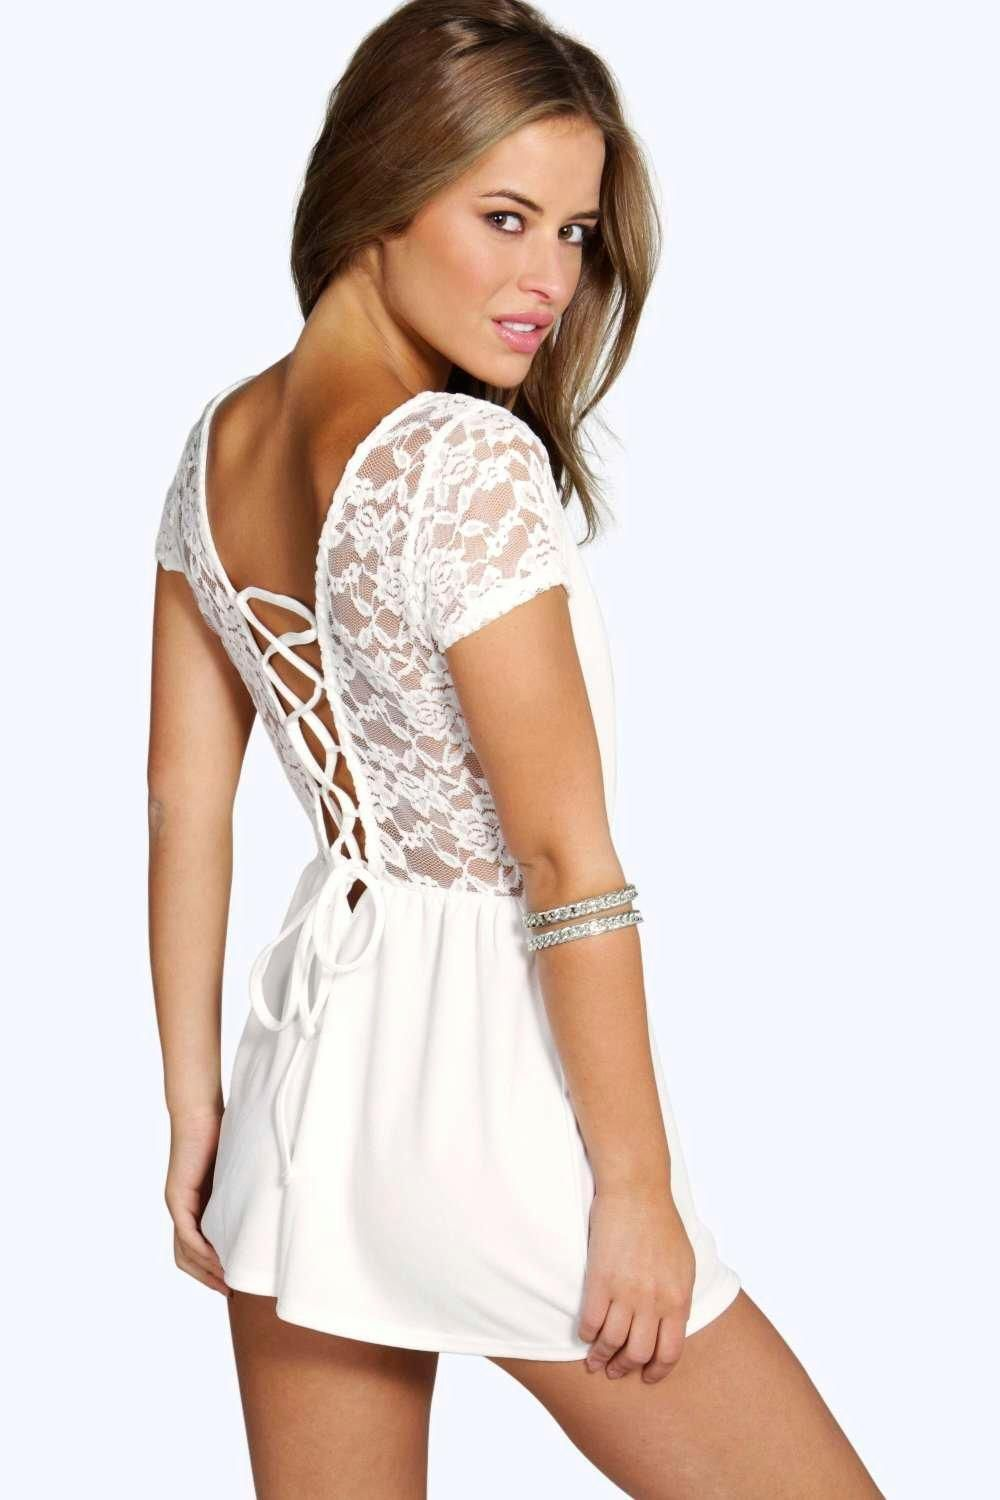 56bd5f868cf7 Boohoo - Petite - Lily Lace Up Back Crochet Playsuit in ivory white